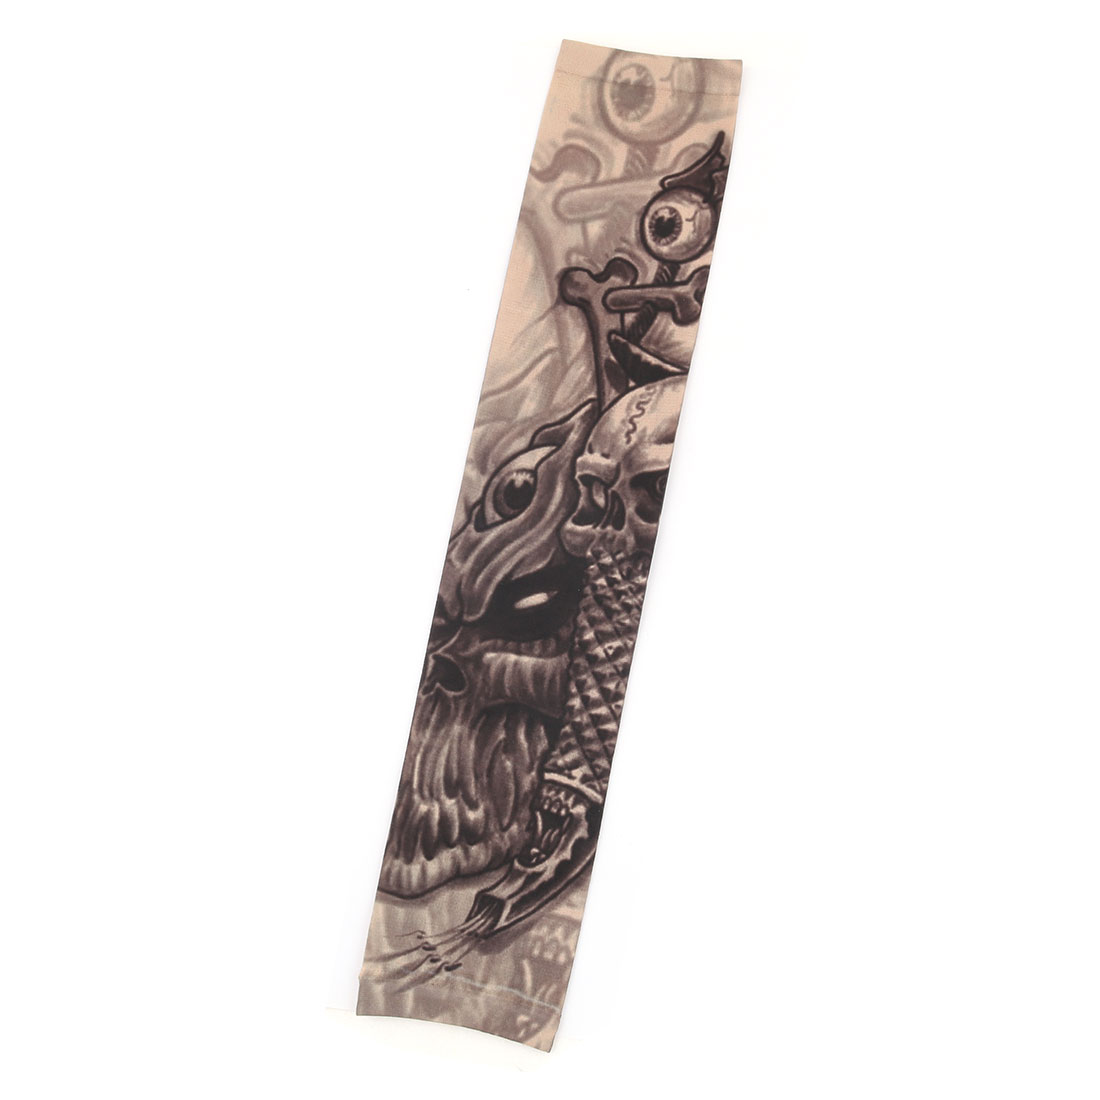 Unisex Outdoor Nylon Skull Print Sporting Camping Climbing Arm Protector Sleeve Black